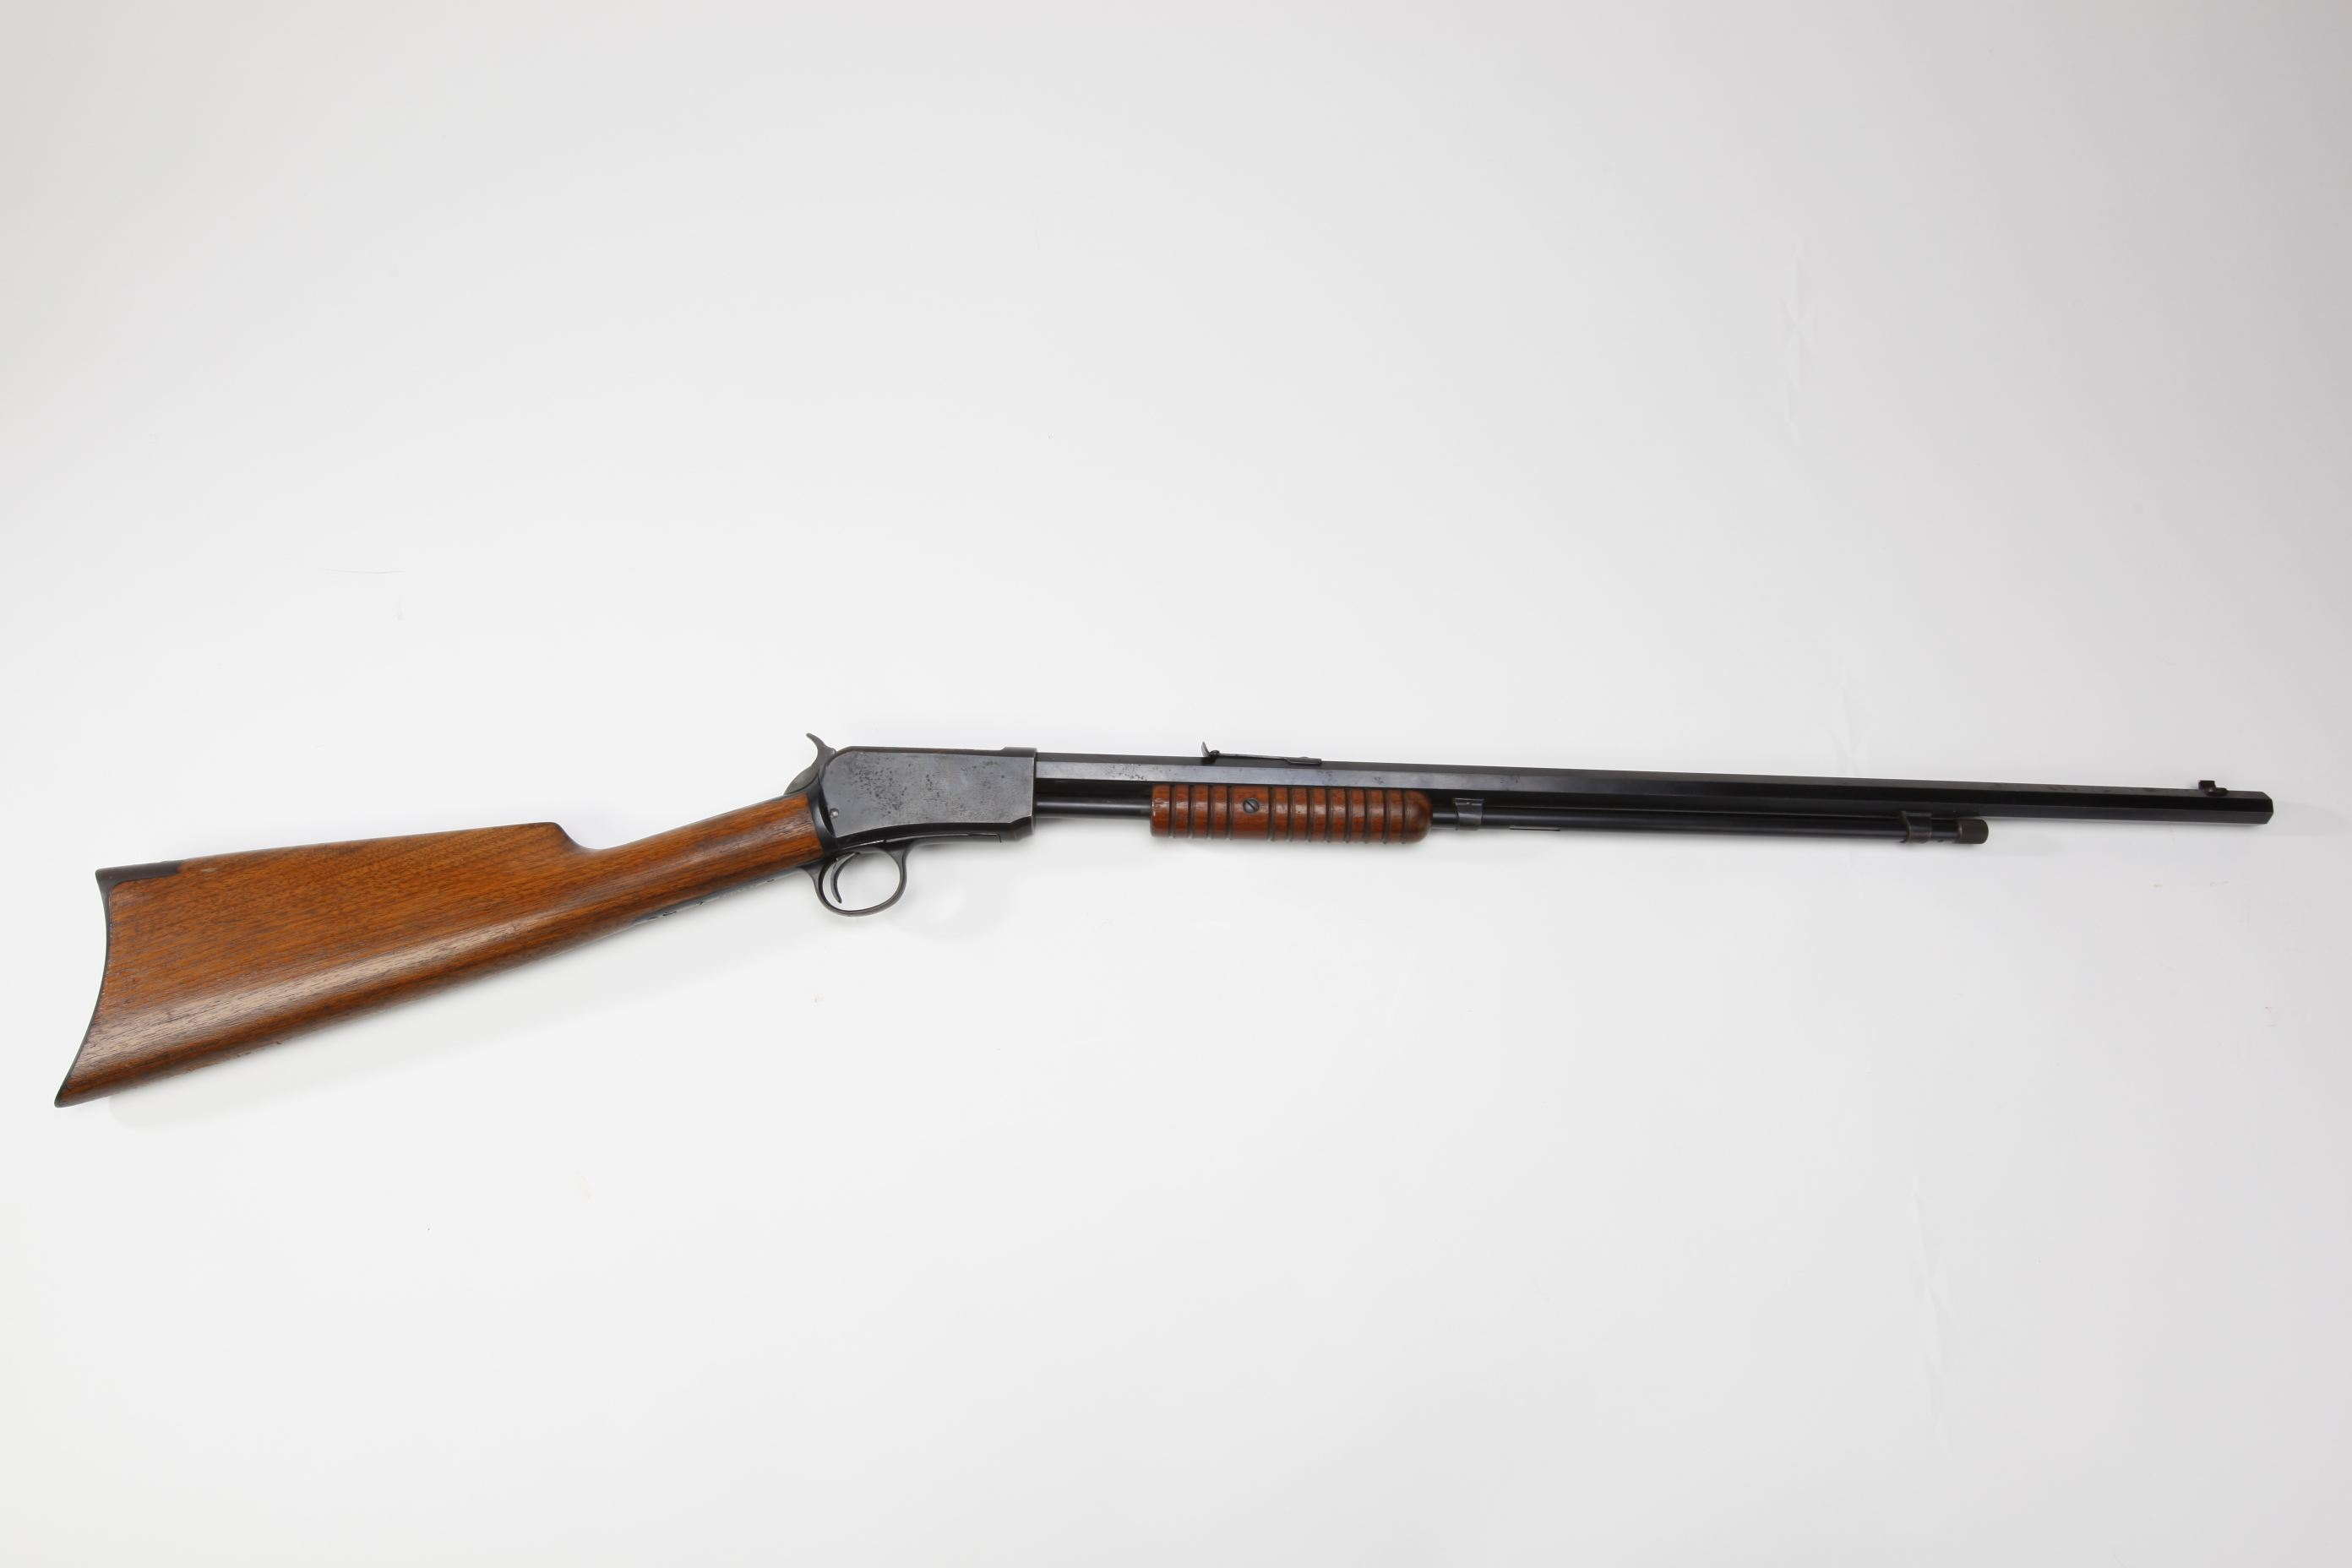 Winchester Model 1890 Slide Action Rifle (5)